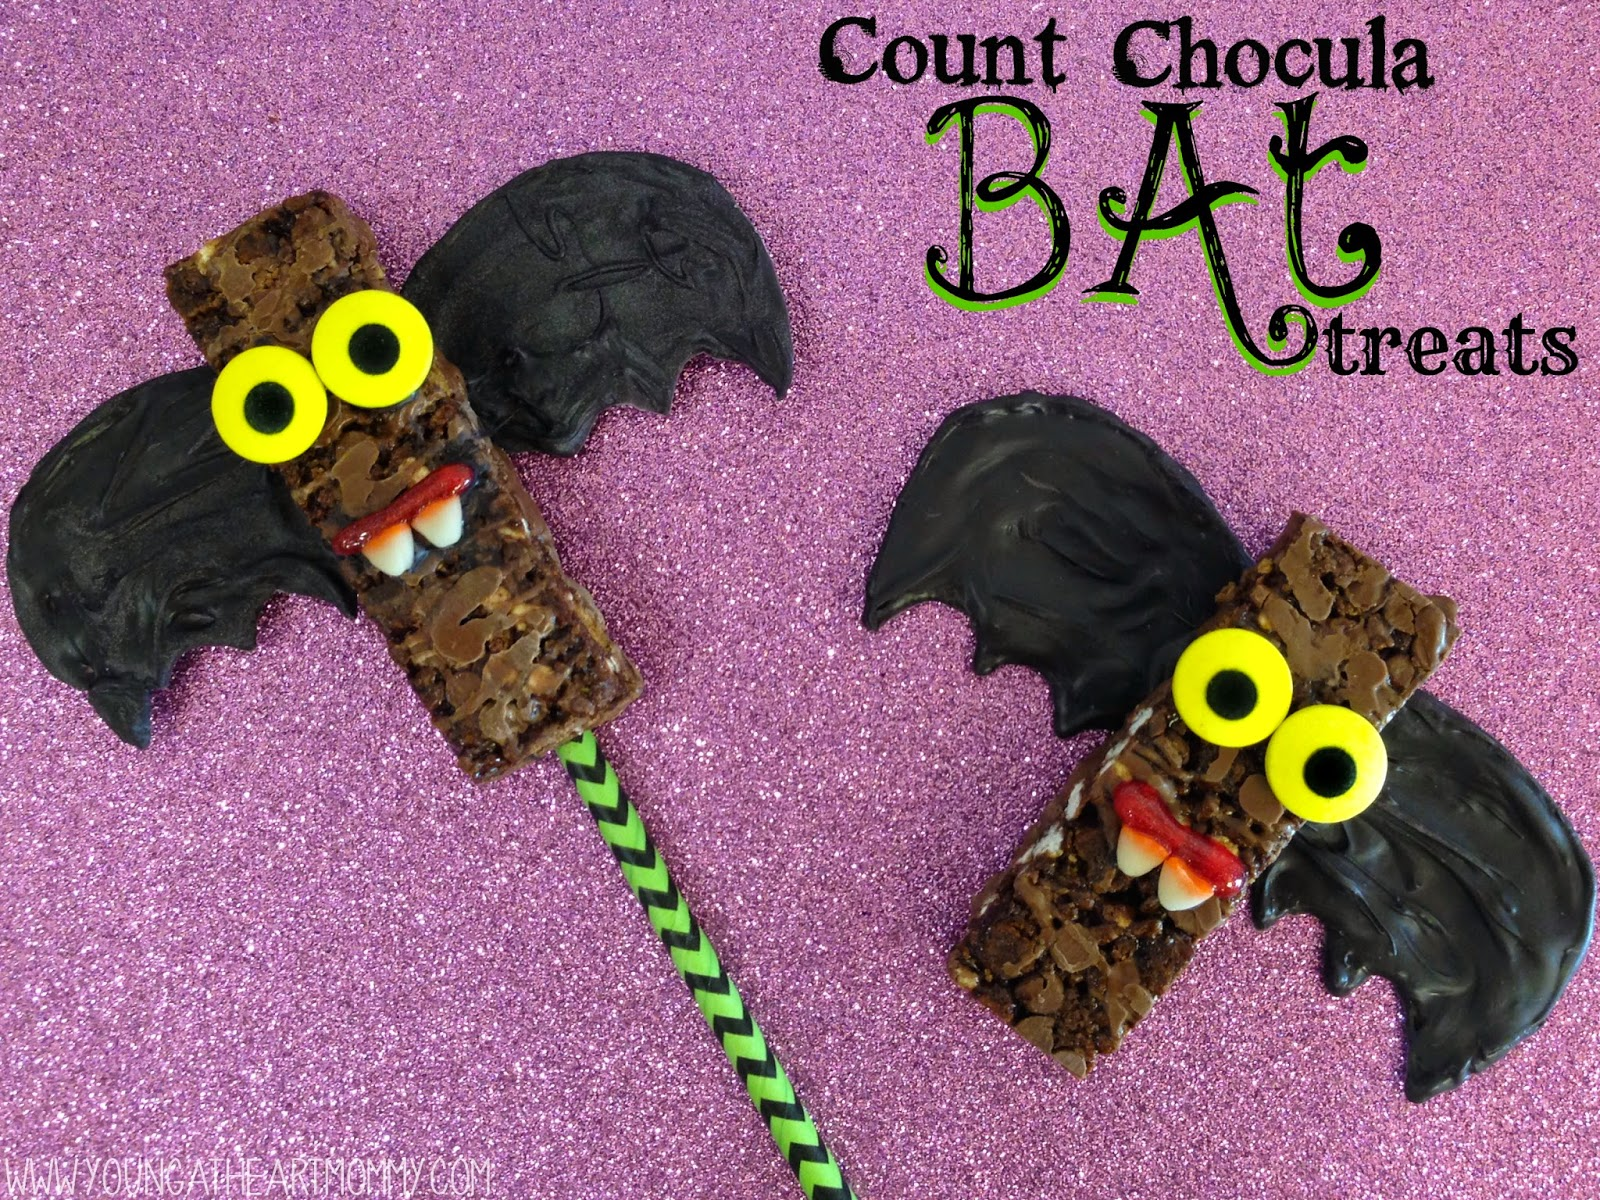 http://www.youngatheartmommy.com/2014/10/count-chocula-bat-treats.html